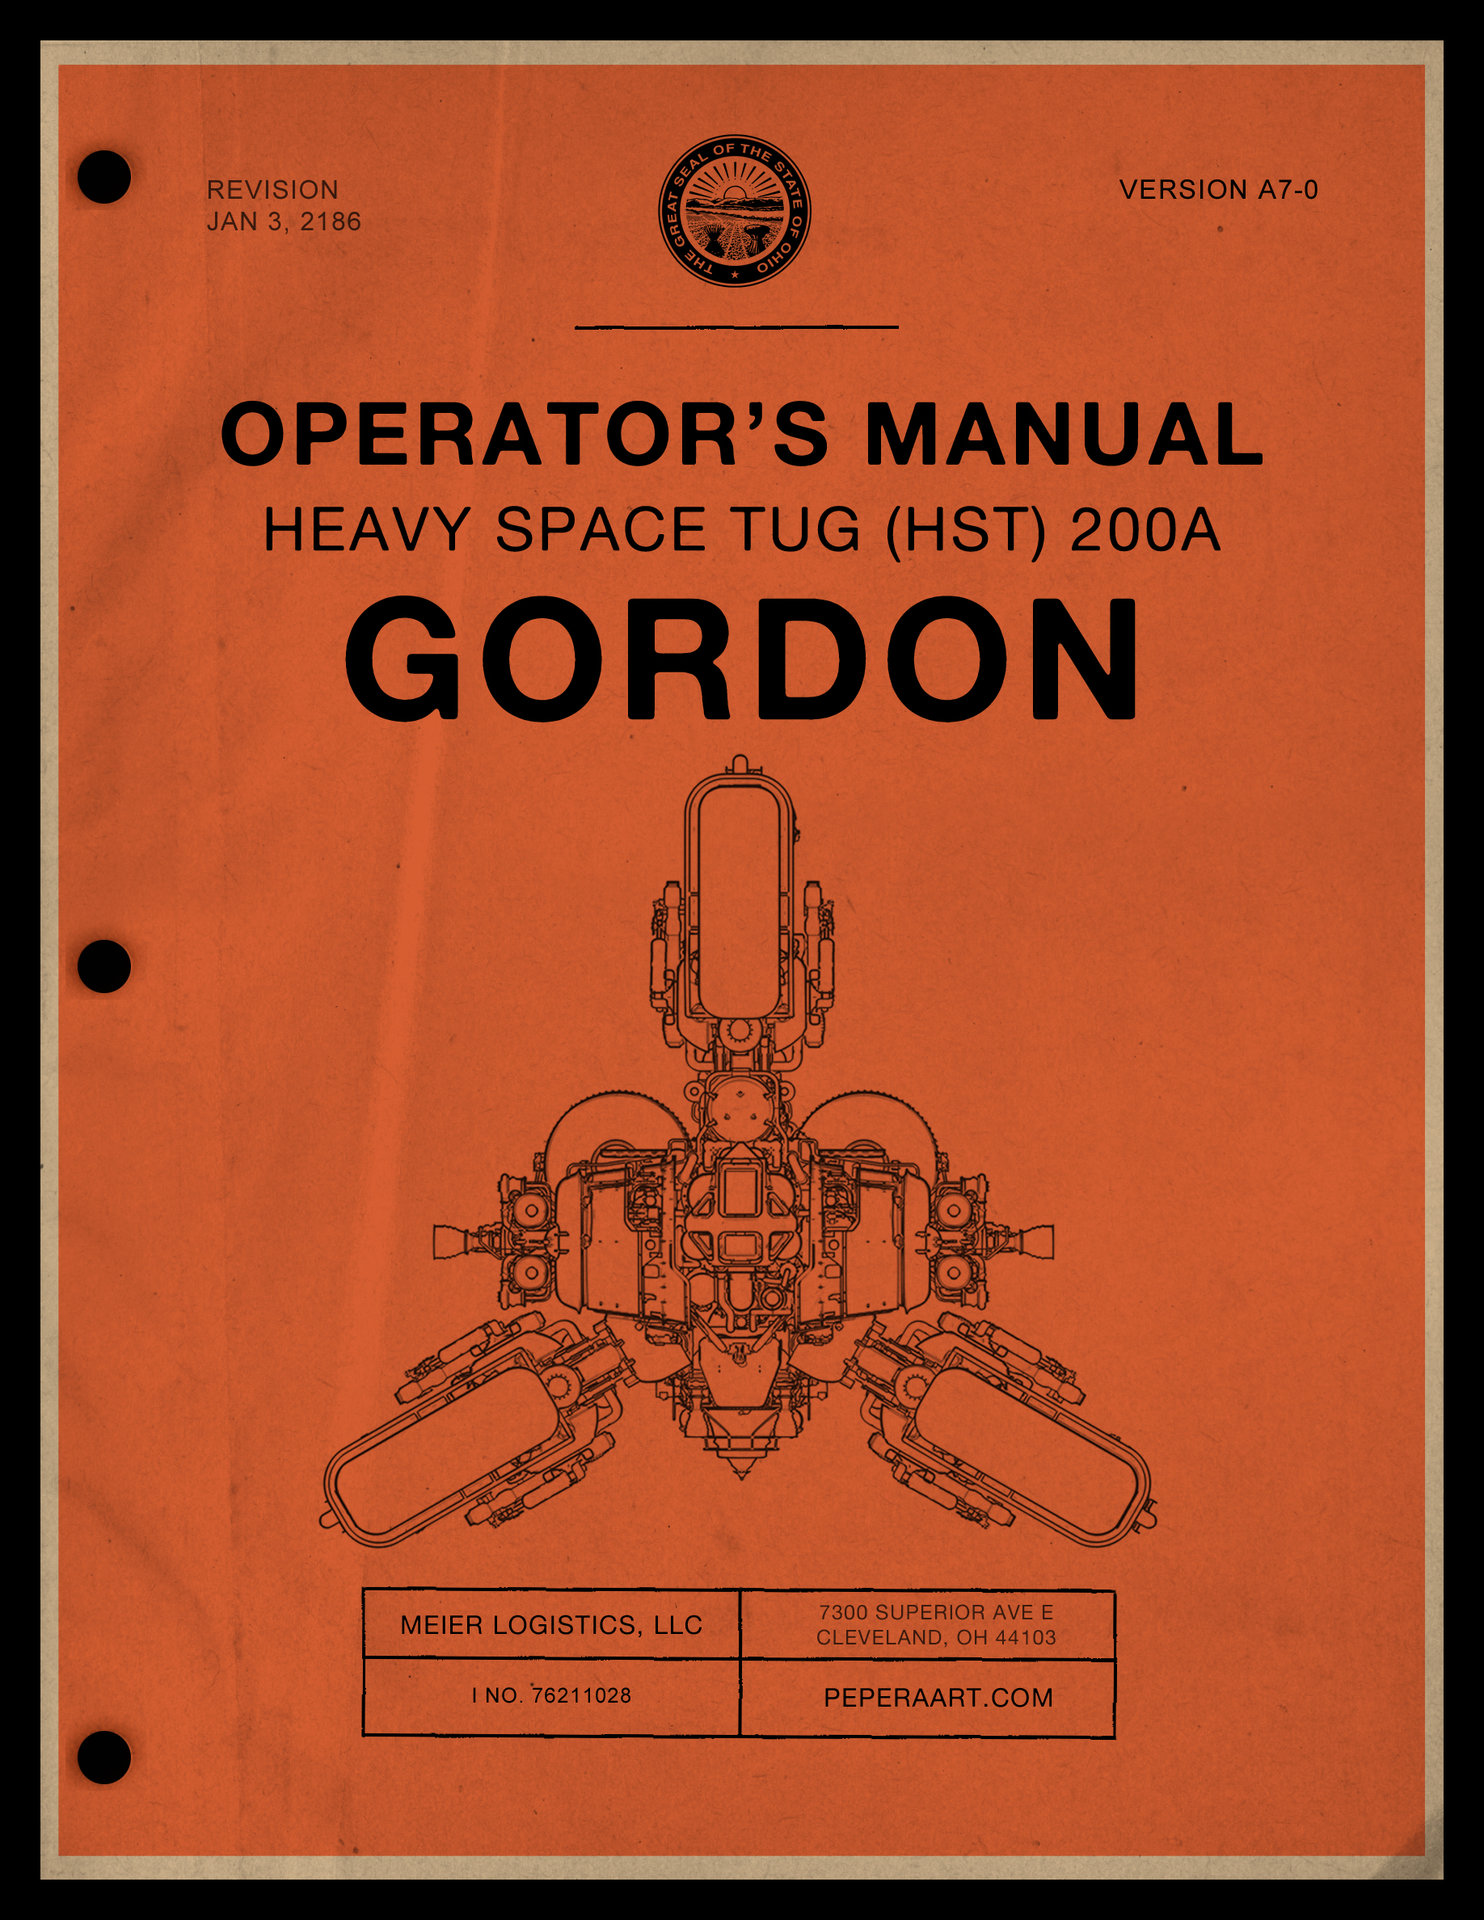 Paul pepera gordon manual